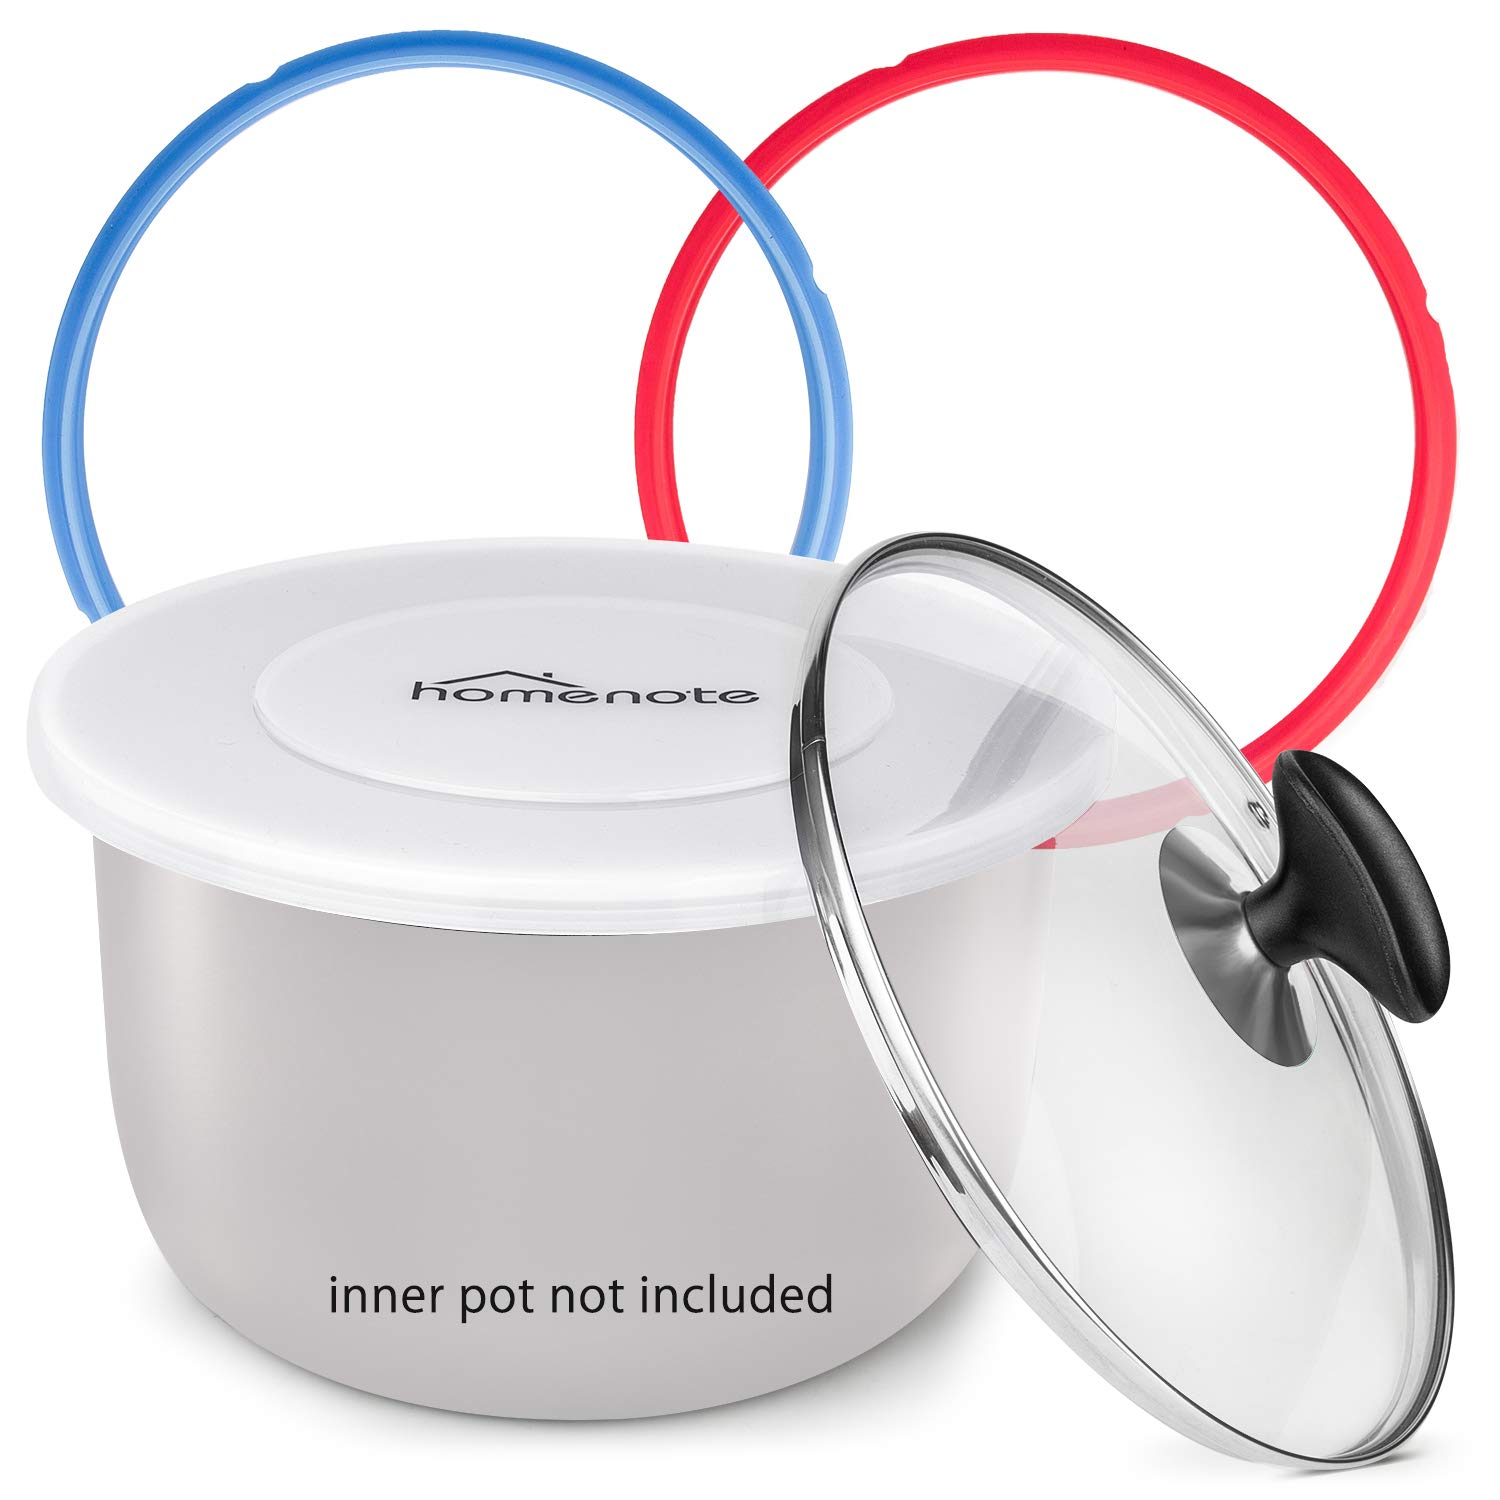 HOMENOTE Pressure Cooker Accessories Compatible with Instant Pot 6qt Only- Best Value Set includes 2 Pack Sealing Ring, Tempered Glass Lid, Silicone Lid, Steam Release